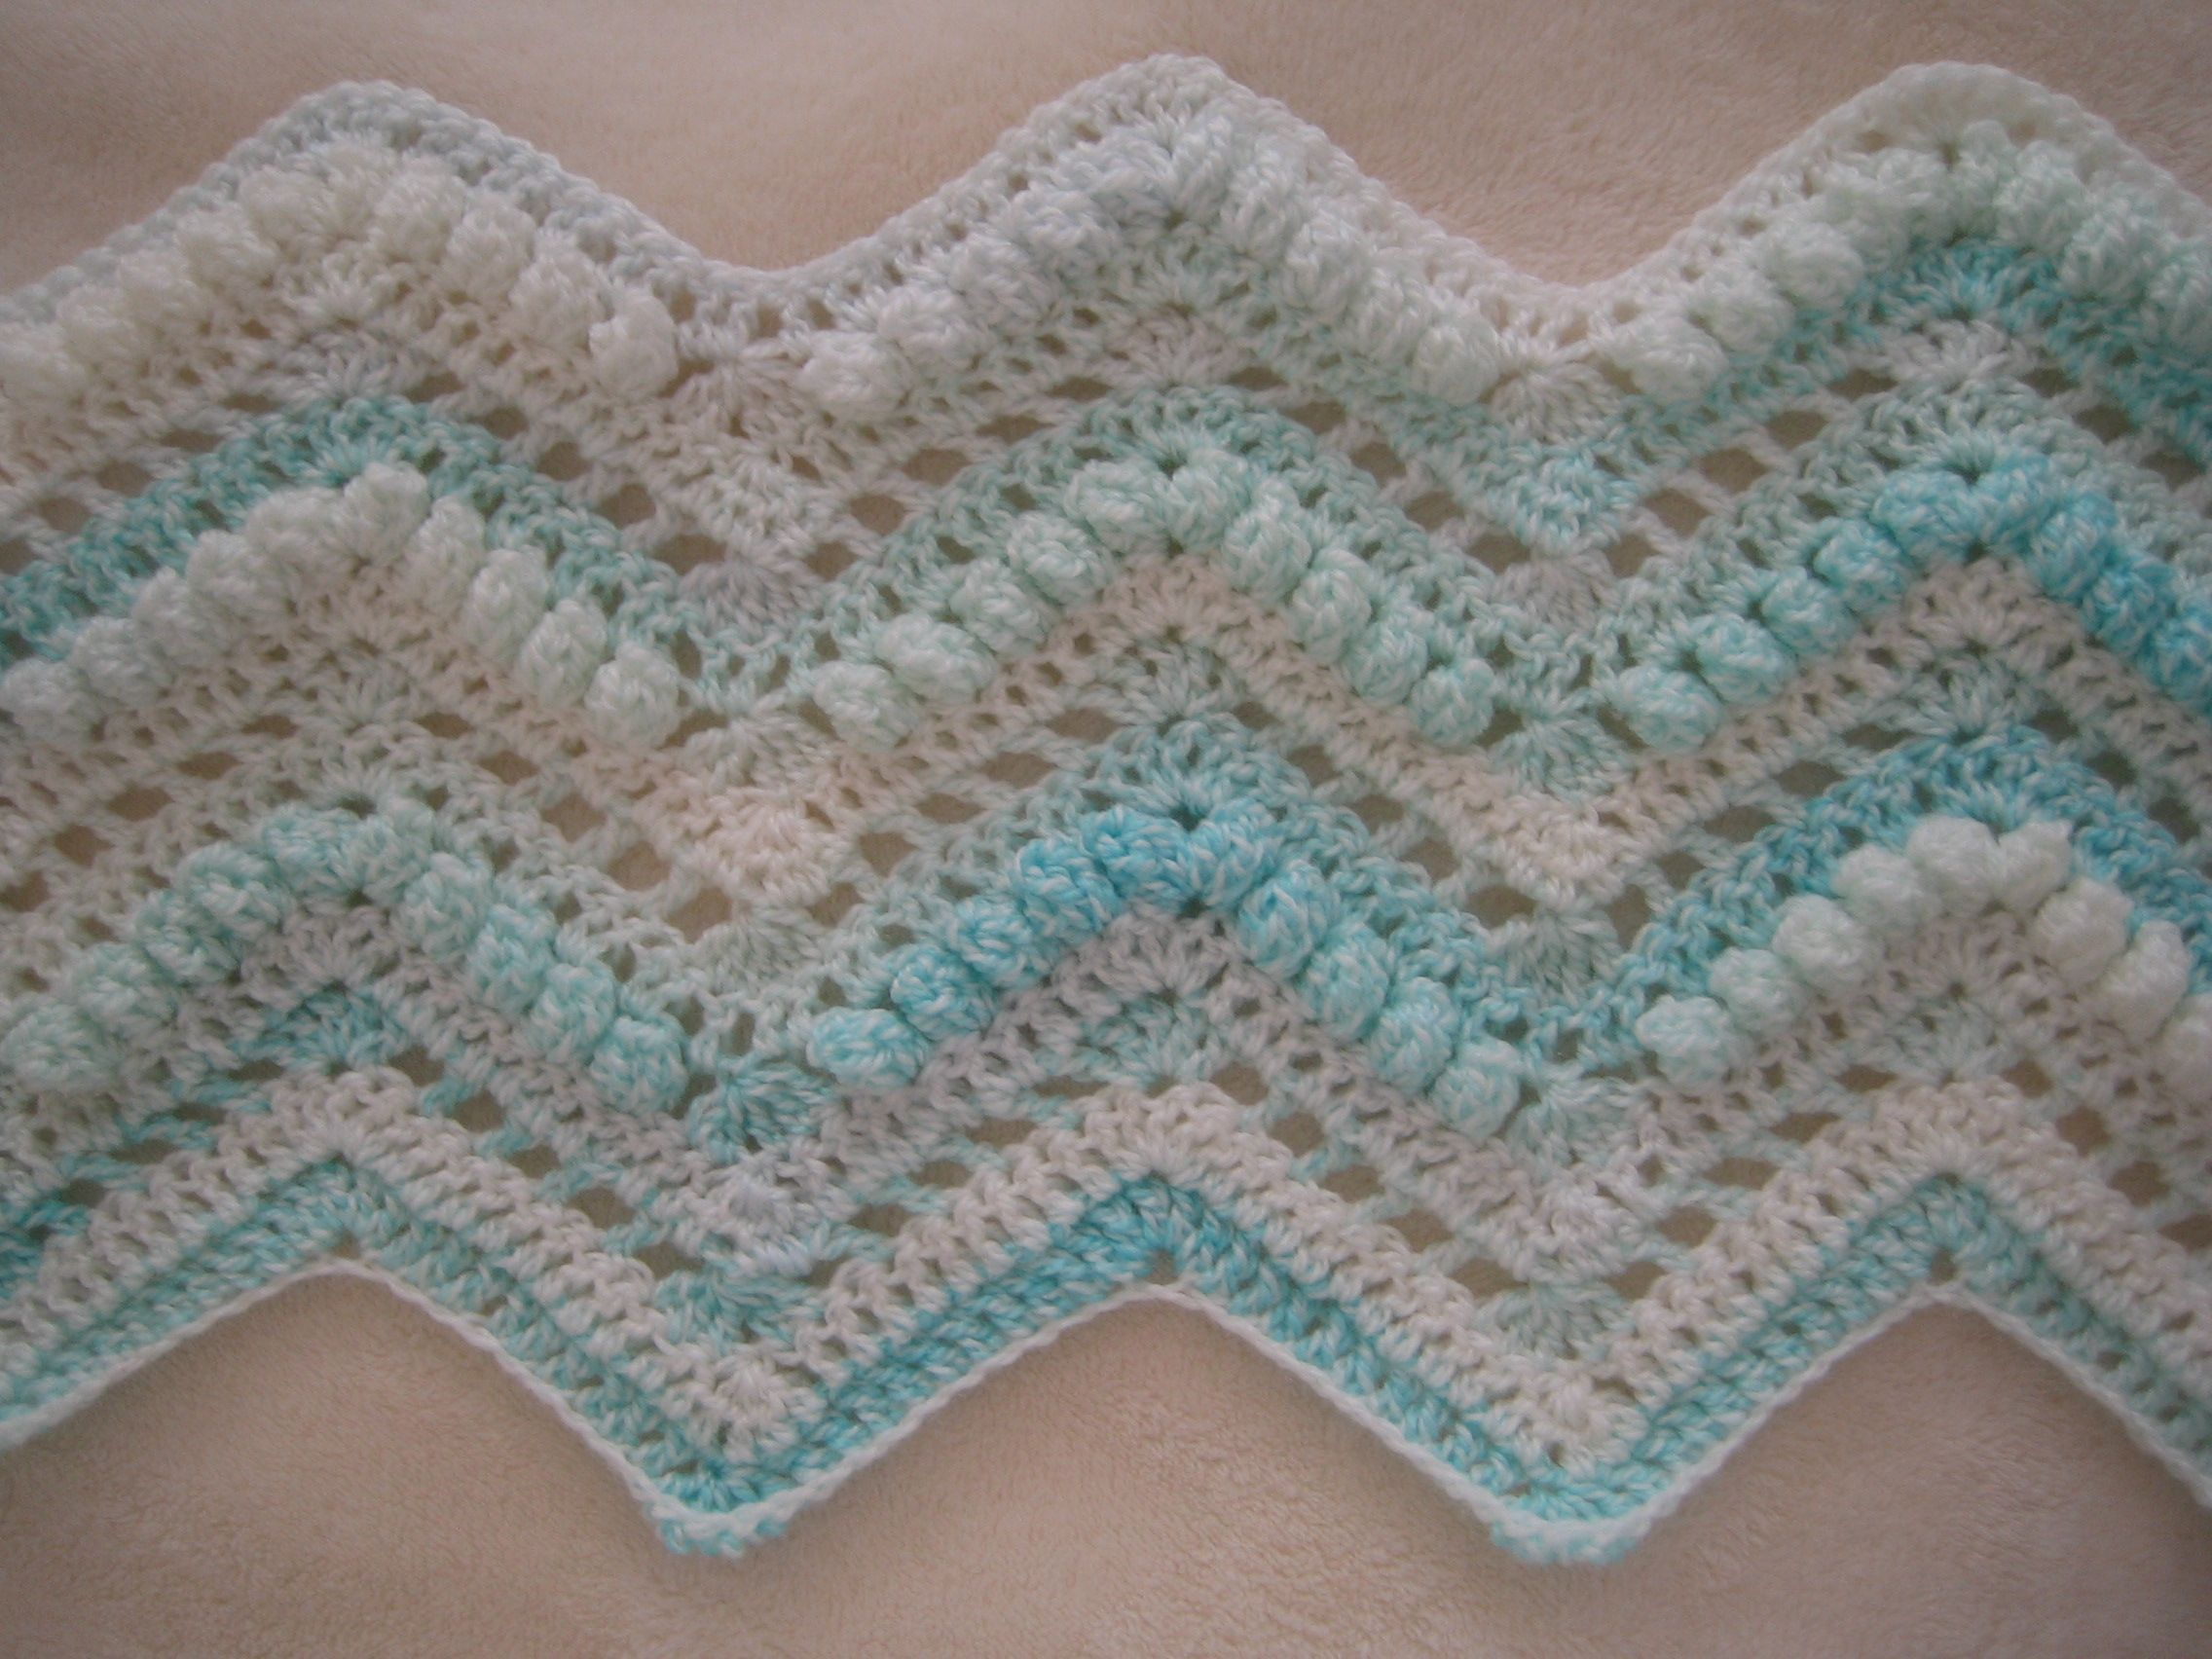 Knitting Pattern For Popcorn Baby Blanket : Stunning Popcorn Ripple Crochet Afghan Free pattern and Yarns